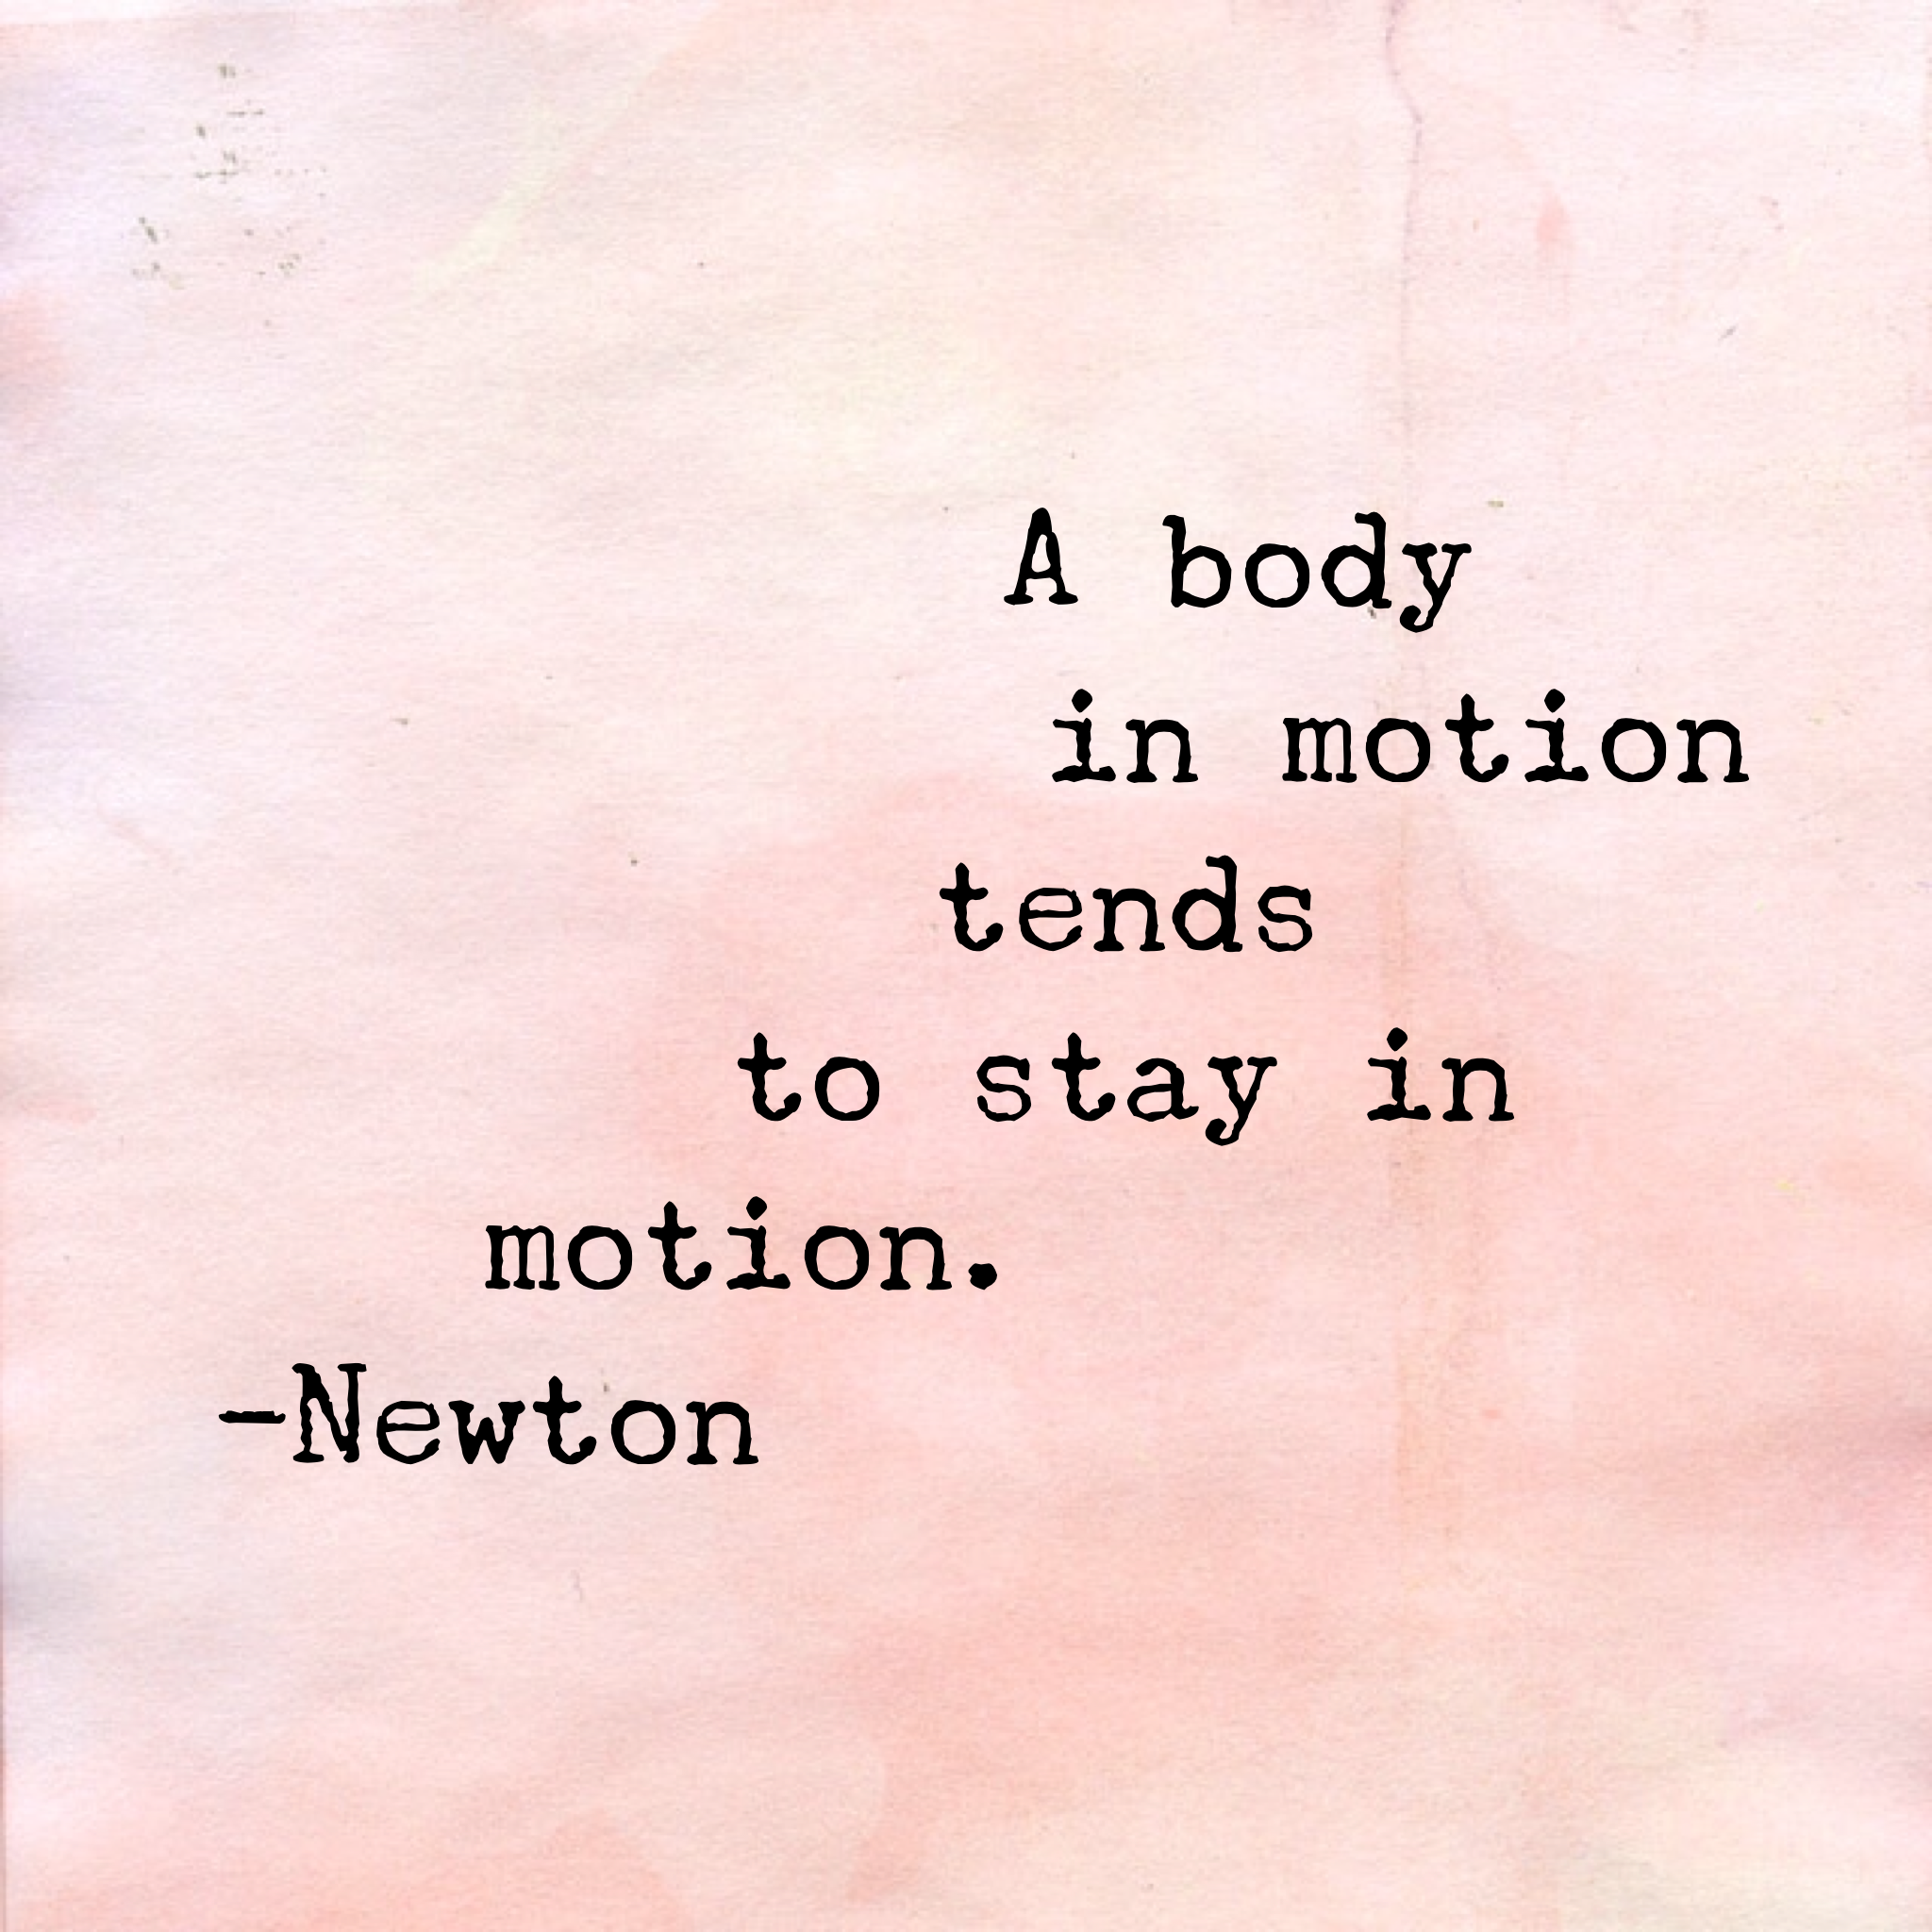 A body in motion tends to stay in motion. - Newton quote